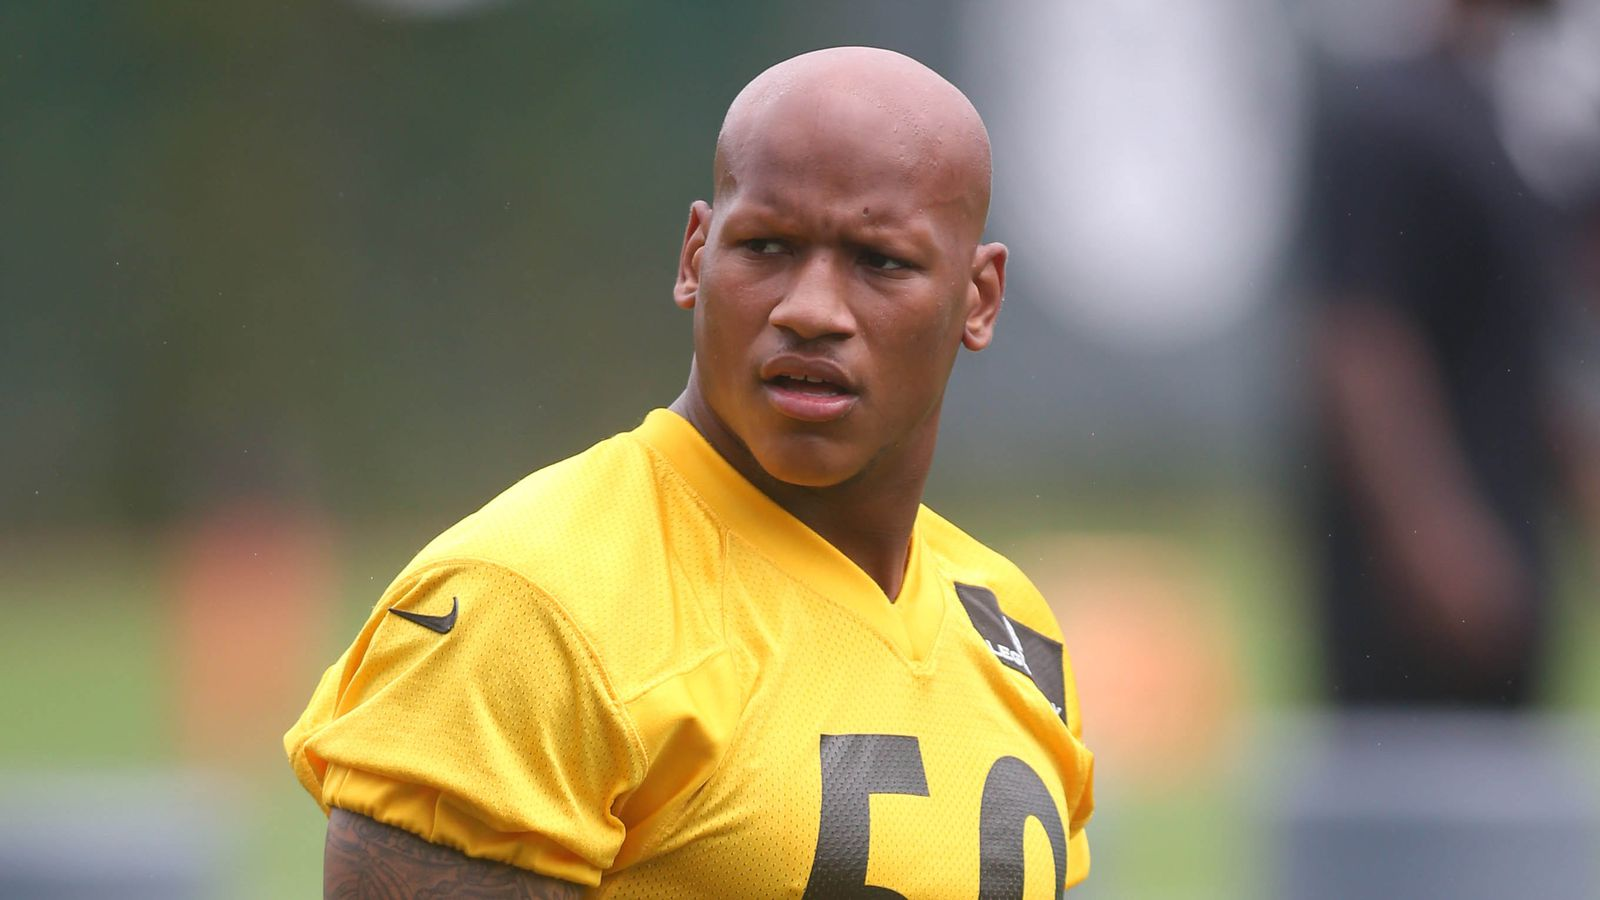 Steelers Ilb Ryan Shazier Fighting A Different Battle Off